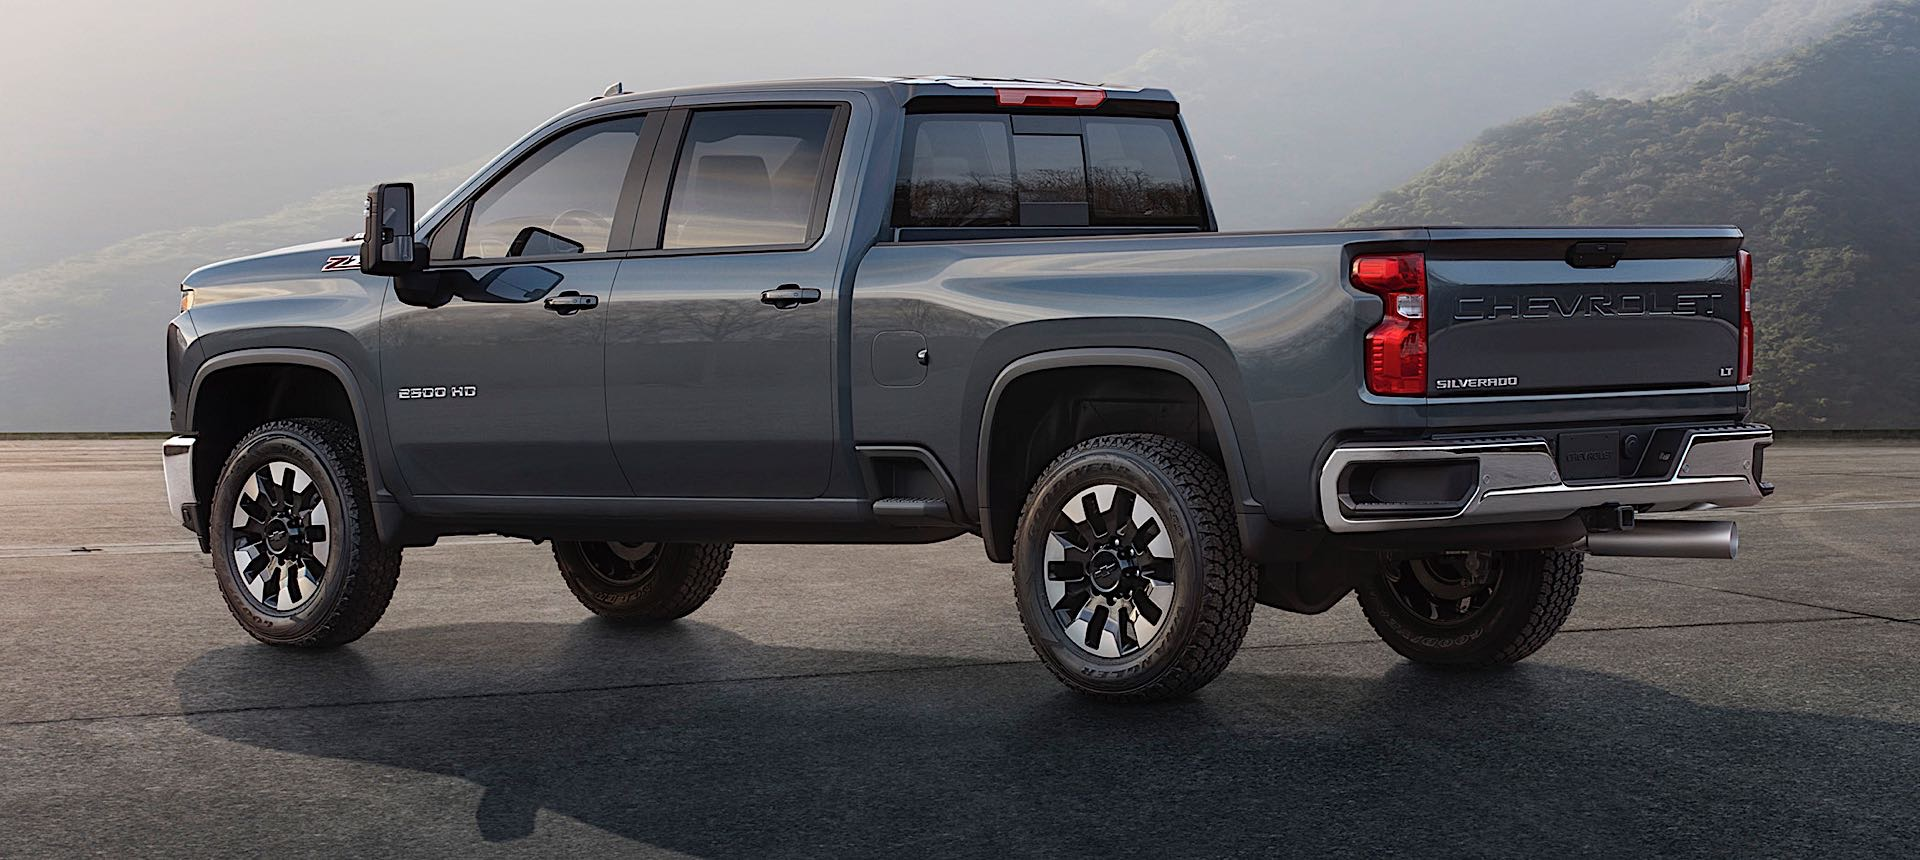 2020 Chevrolet Silverado HD Teased With First Images and Diesel Specs - The Drive